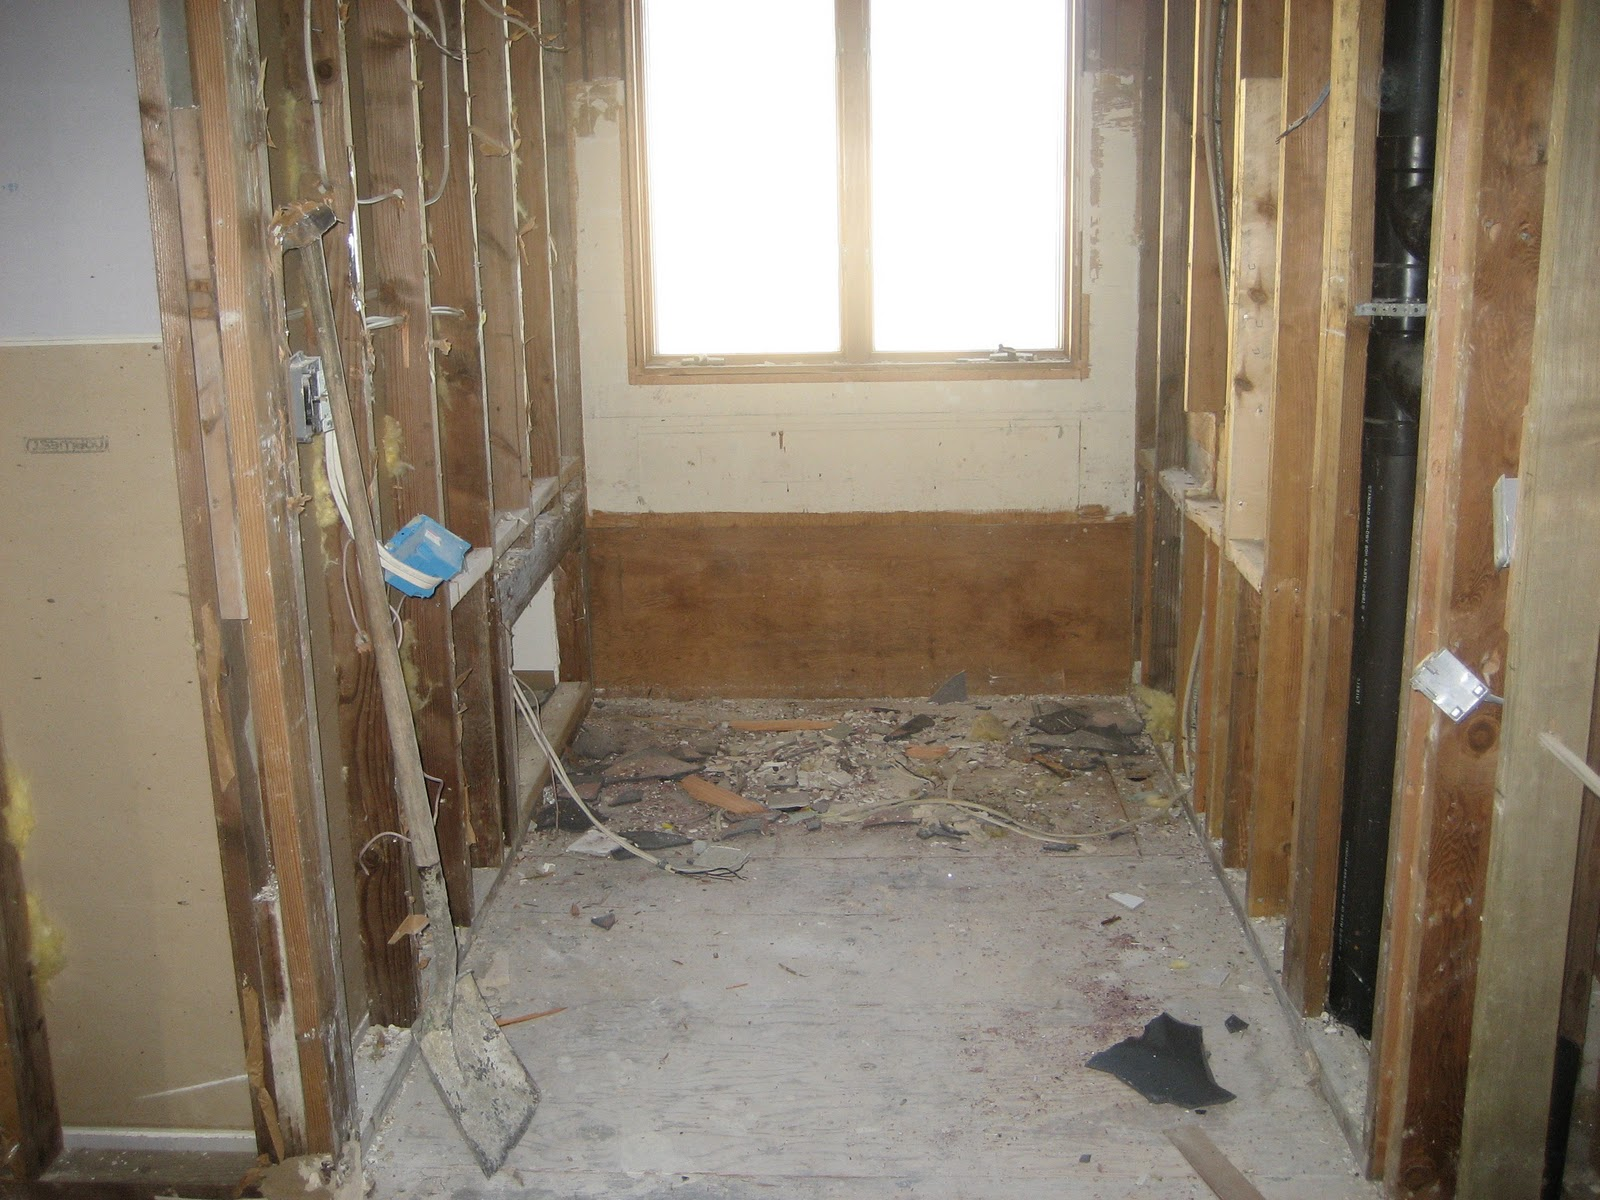 And this is the newly demoed shower area for How to demo a bathroom